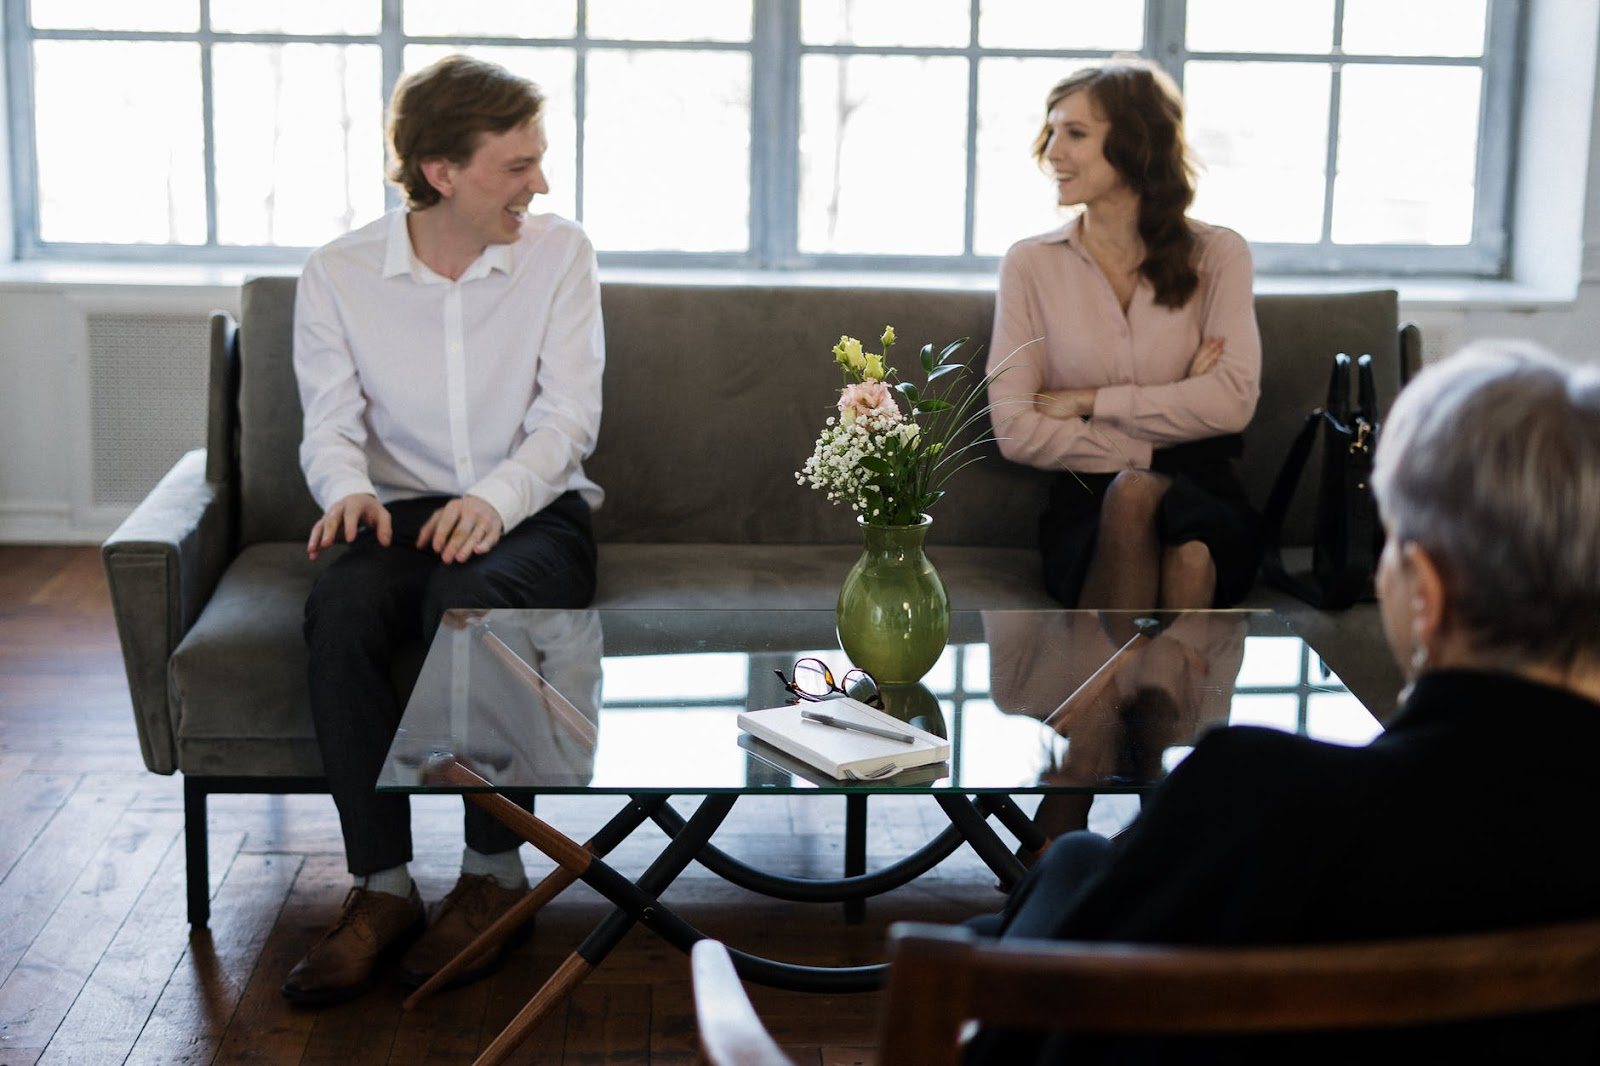 Man and woman smiling in therapy